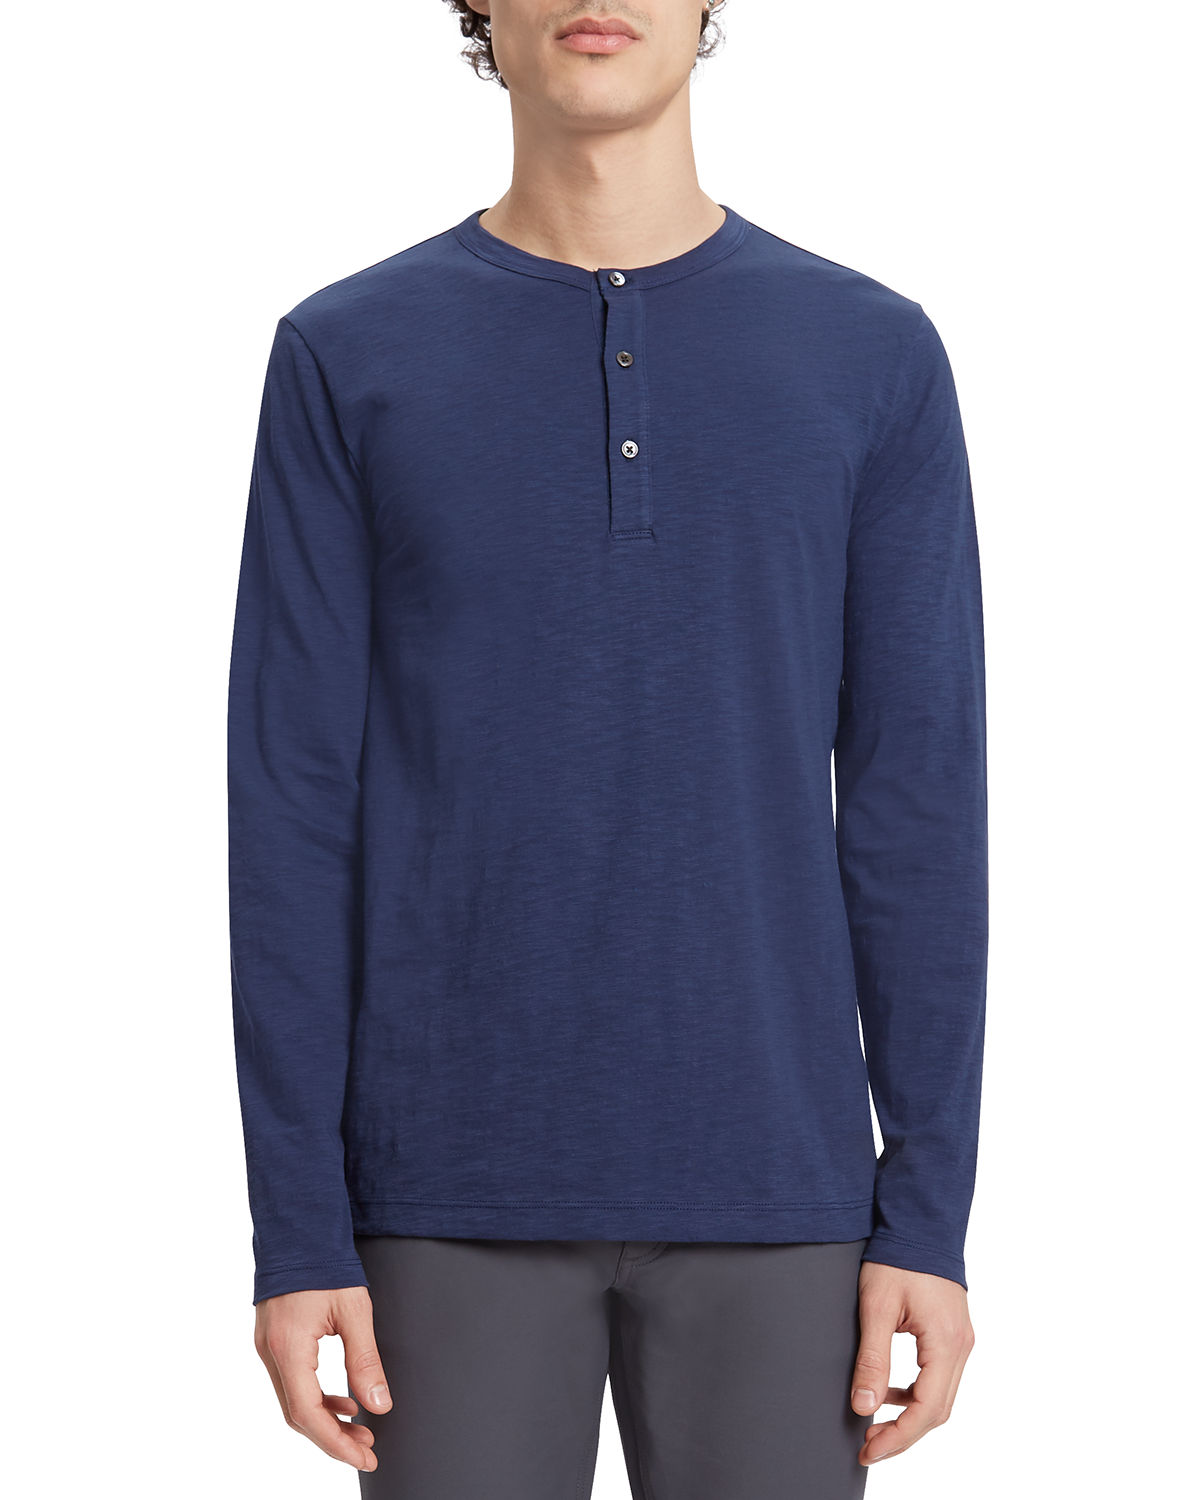 Theory Cottons MEN'S ESSENTIAL LONG SLEEVE HENLEY SHIRT